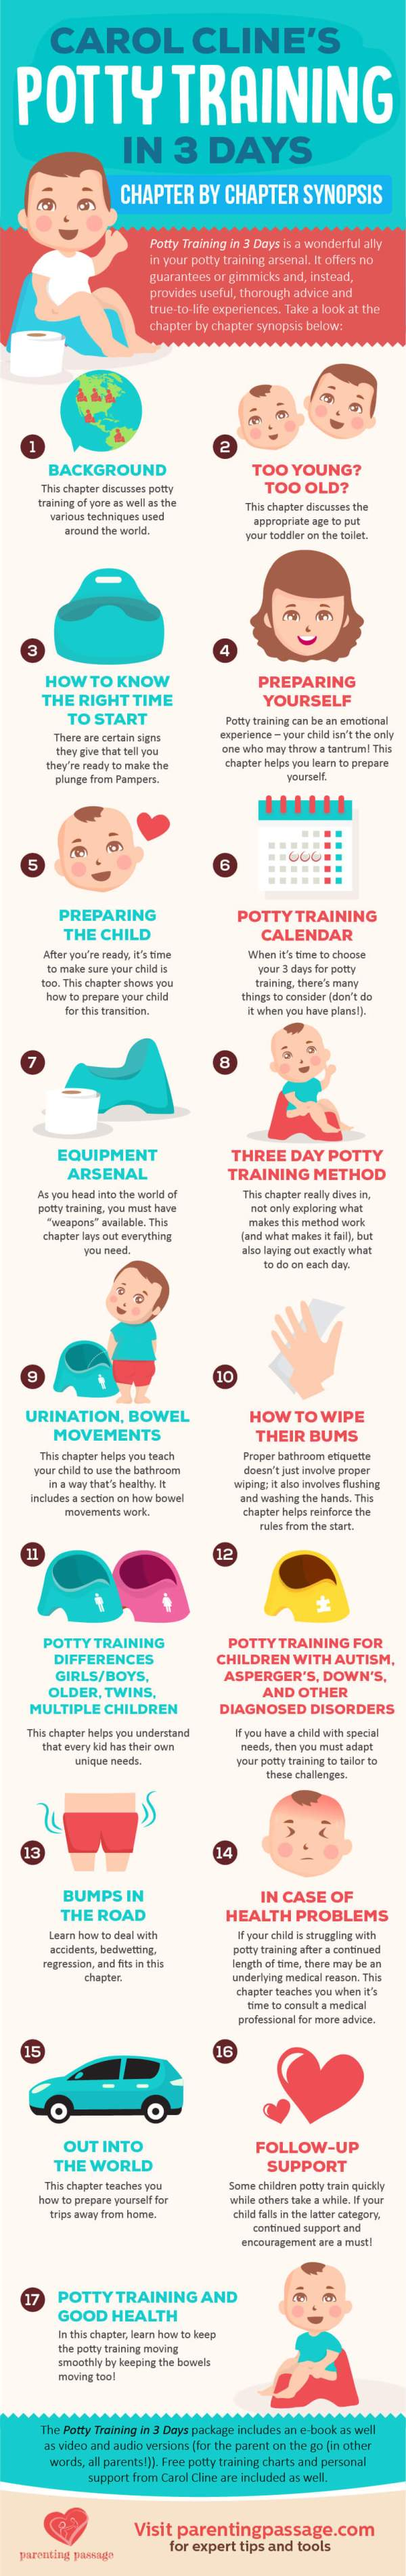 Carol-Cline-Potty-Training-in-3-Days-Synopsis-infographic